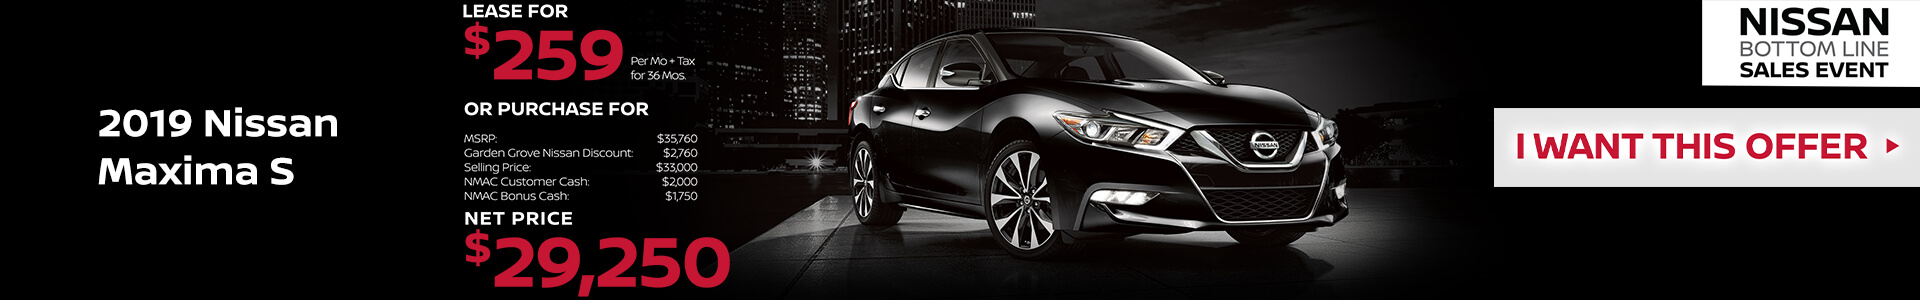 2019 Nissan Maxima Lease for $239